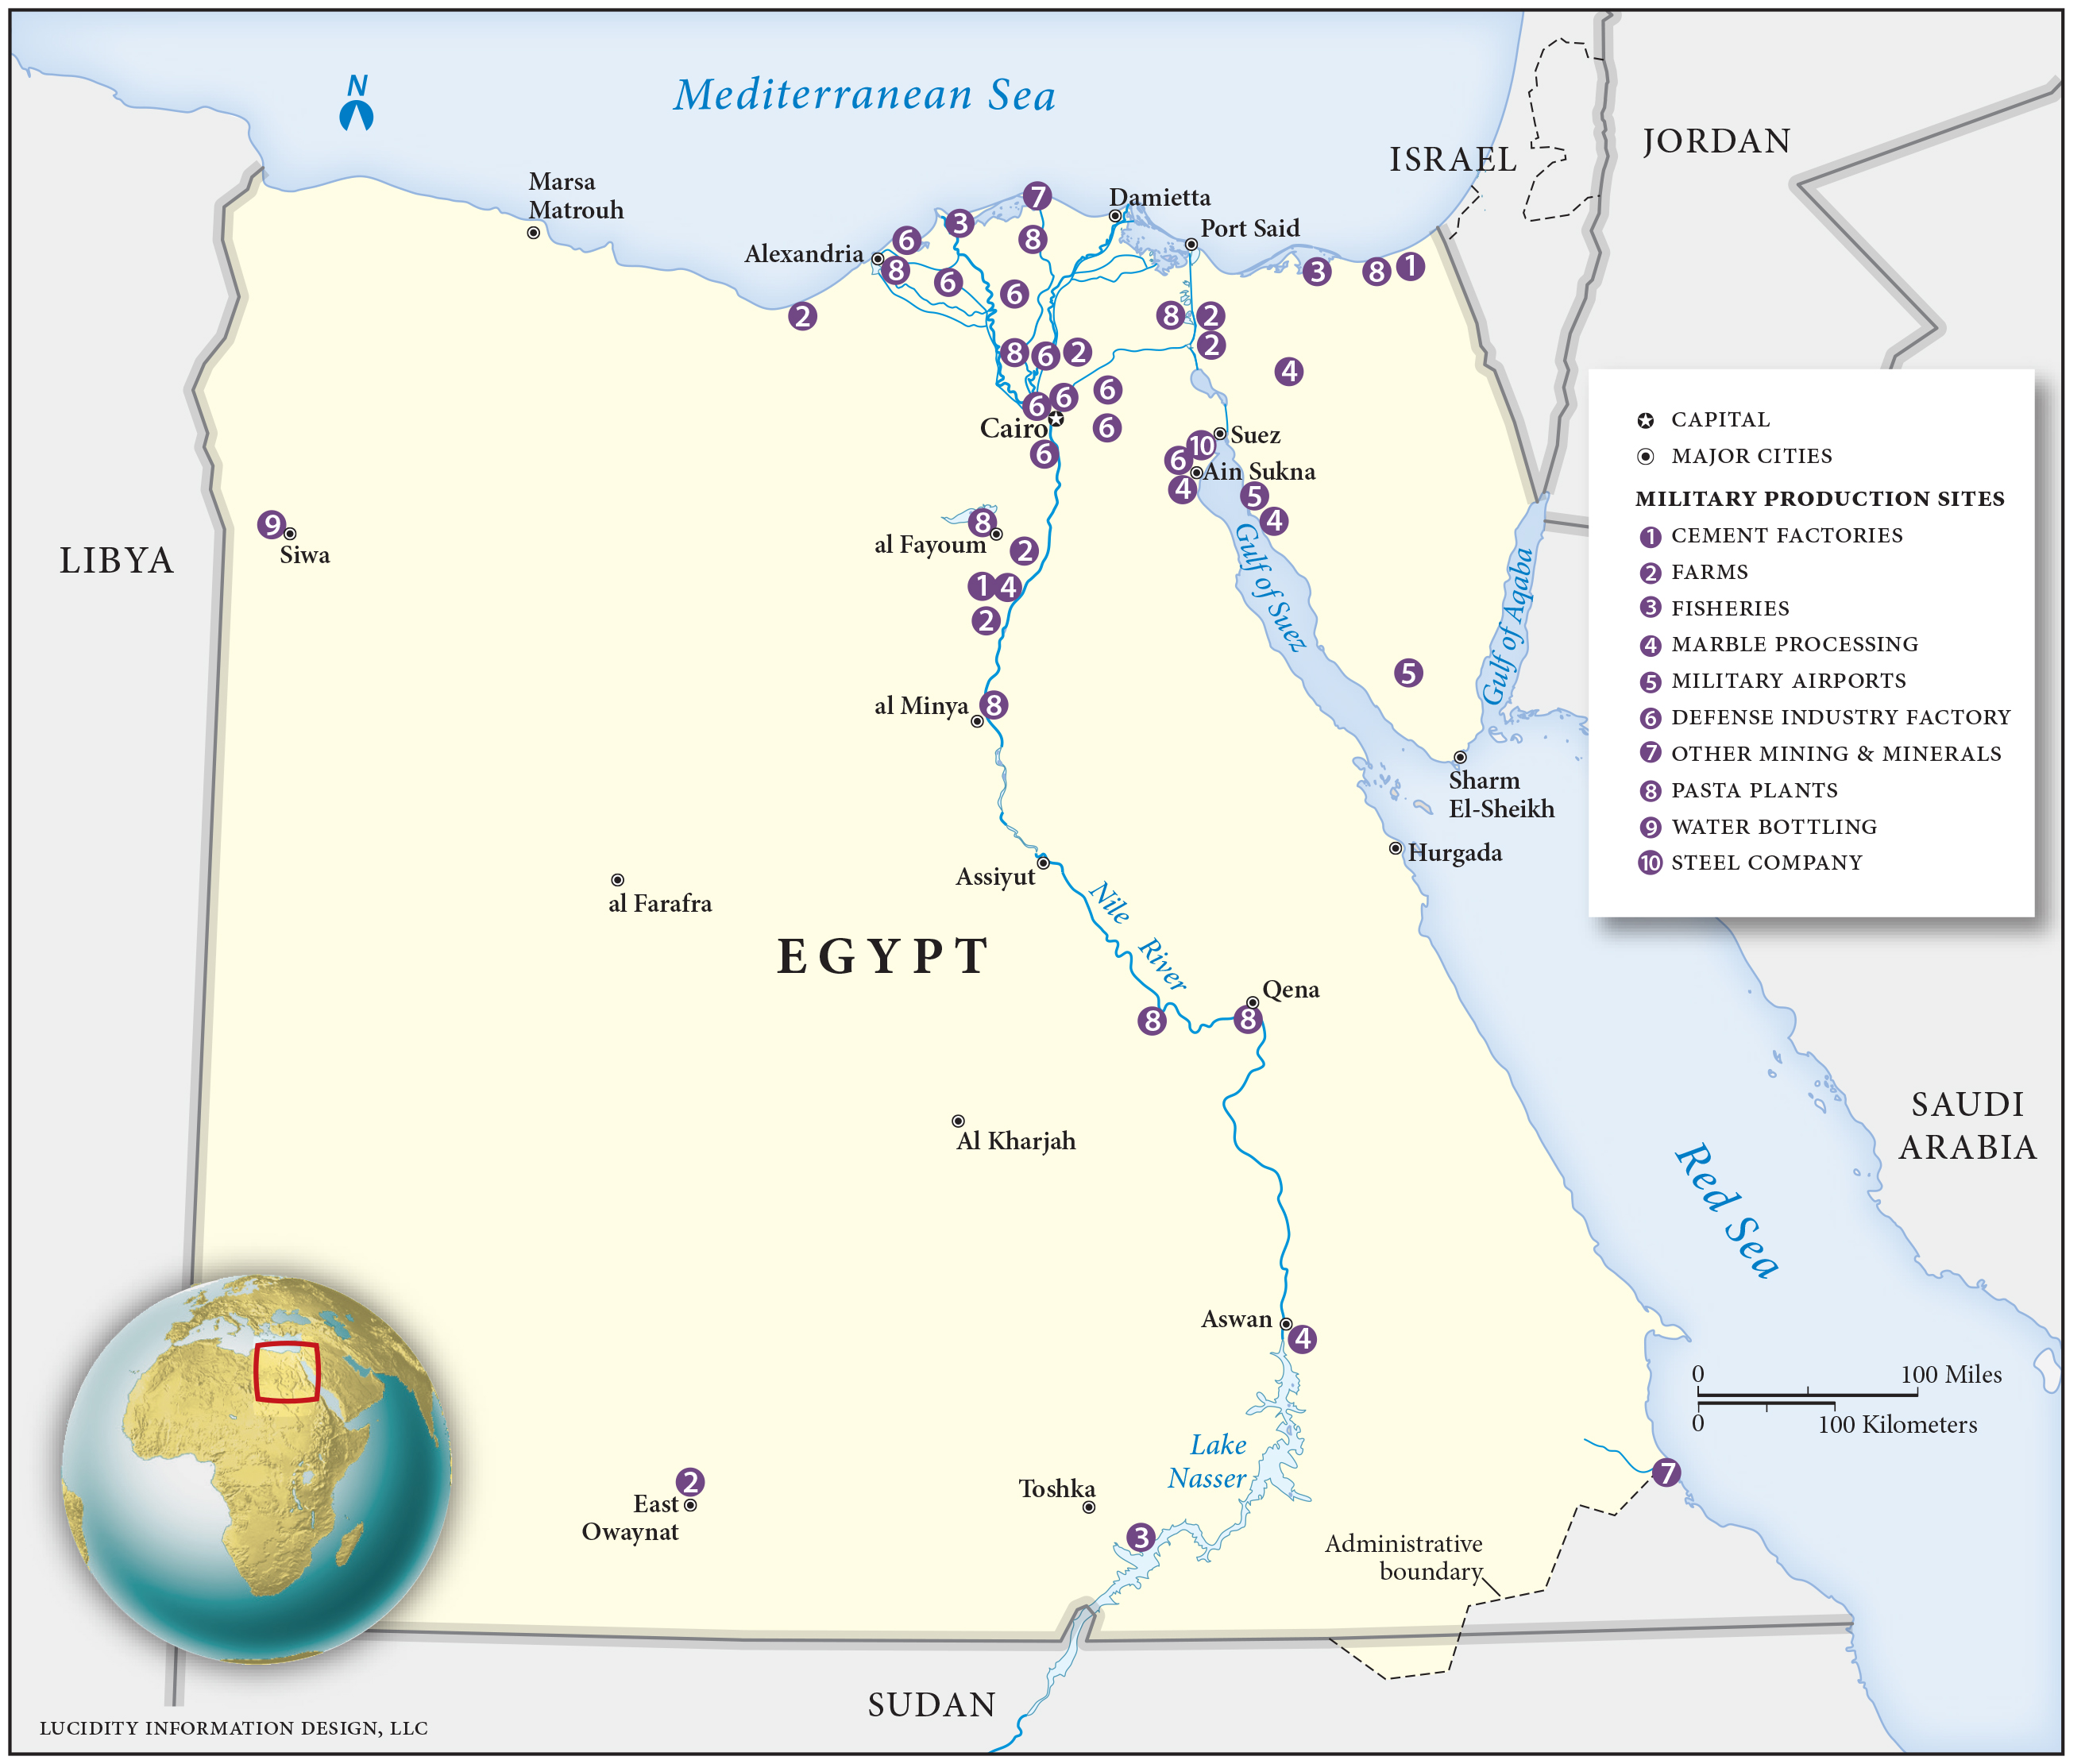 Mapping The Formal Military Economy Part 2 We Build Egypt We Feed Egypt We Are Egypt Owners Of The Republic An Anatomy Of Egypt S Military Economy Carnegie Middle East Center